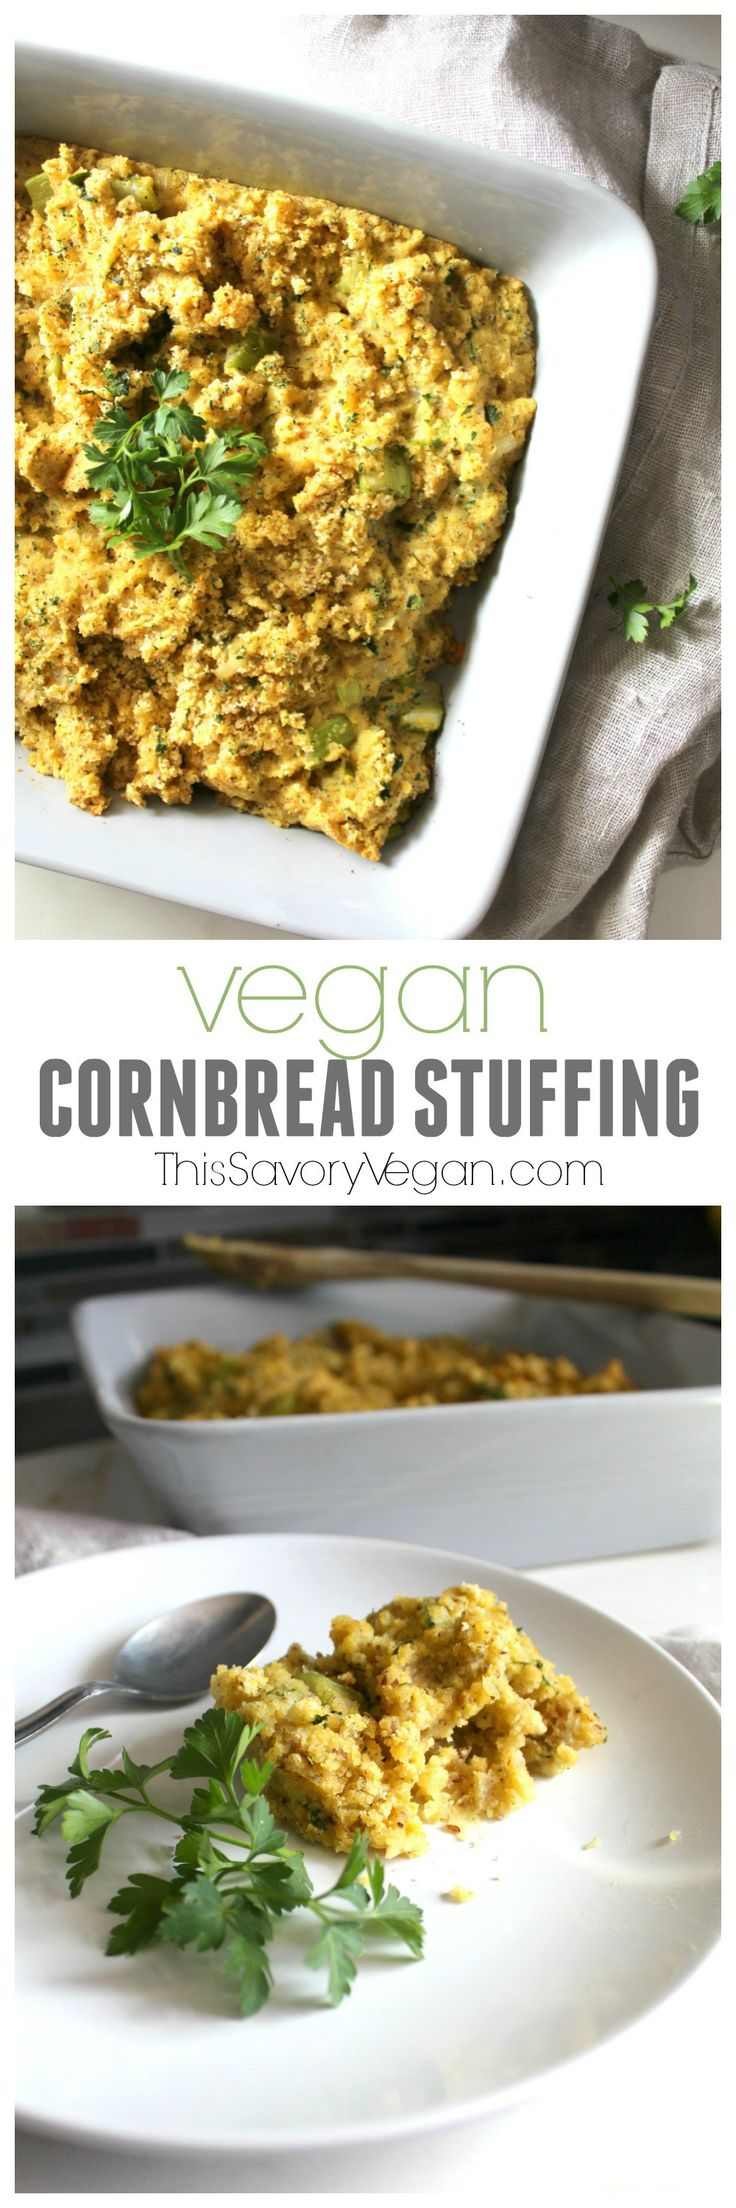 Have a delicious Thanksgiving with this Vegan Cornbread Dressing | ThisSavoryVegan.com